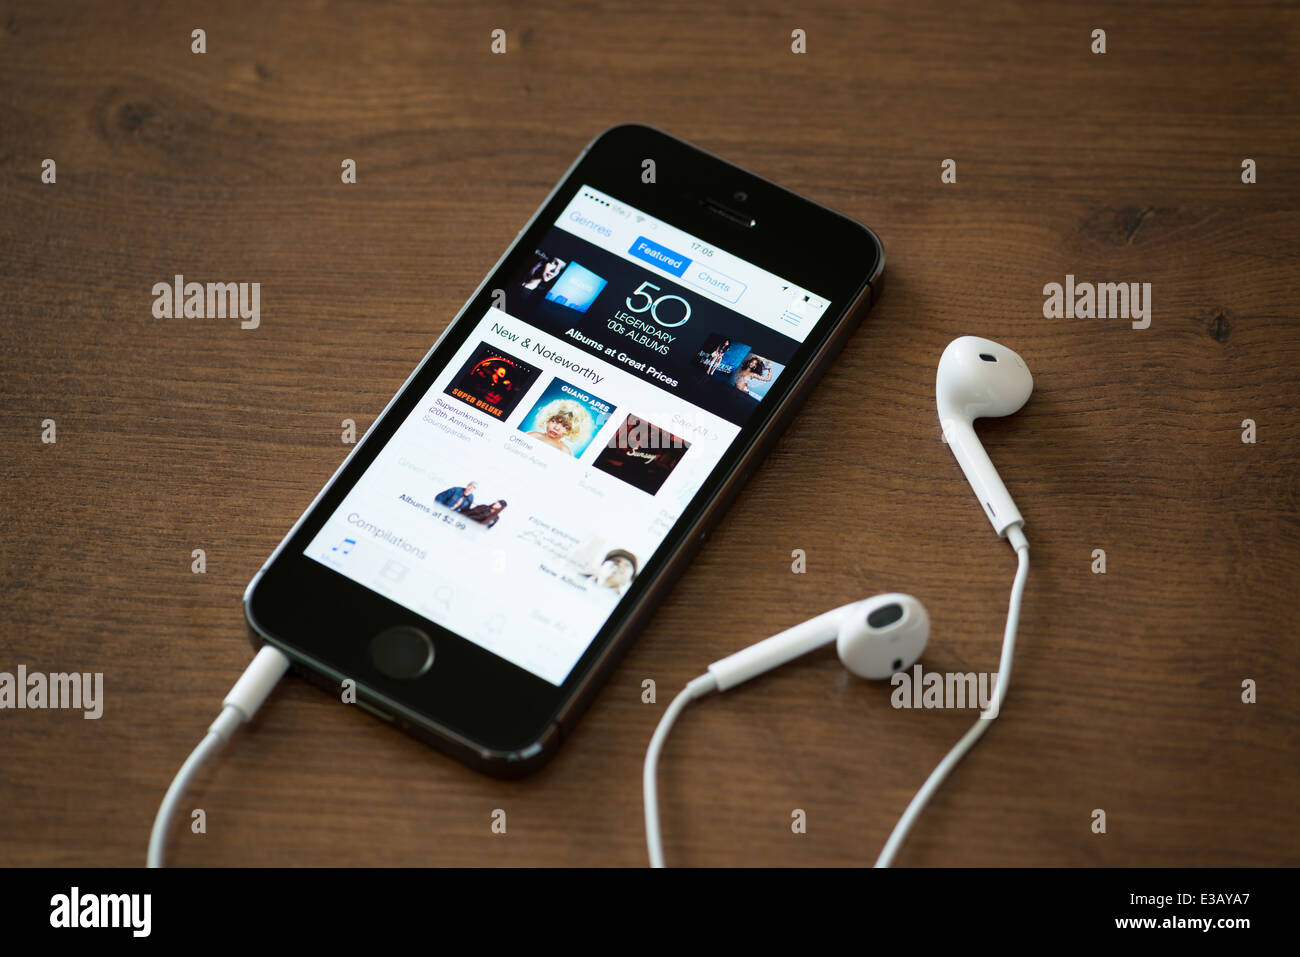 Brand new Apple iPhone 5S with iTunes store application on the screen lying on a desk with headphones - Stock Image